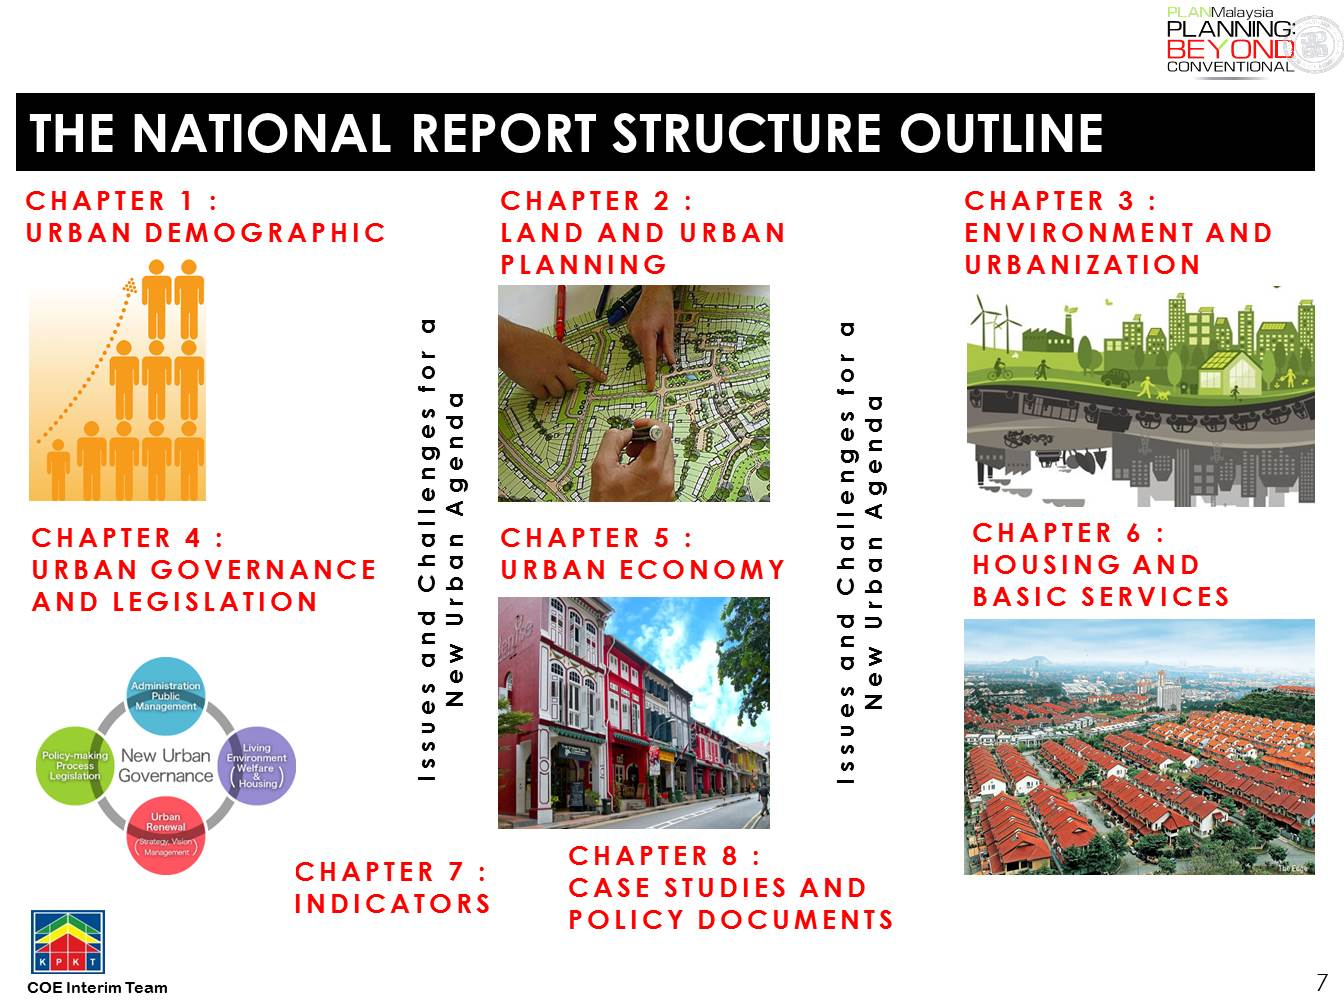 urban development process in malaysia For example, the 11th malaysia plan (2016-2020) has an urban policy strategy  that calls for compact cities, transit-oriented development, good.